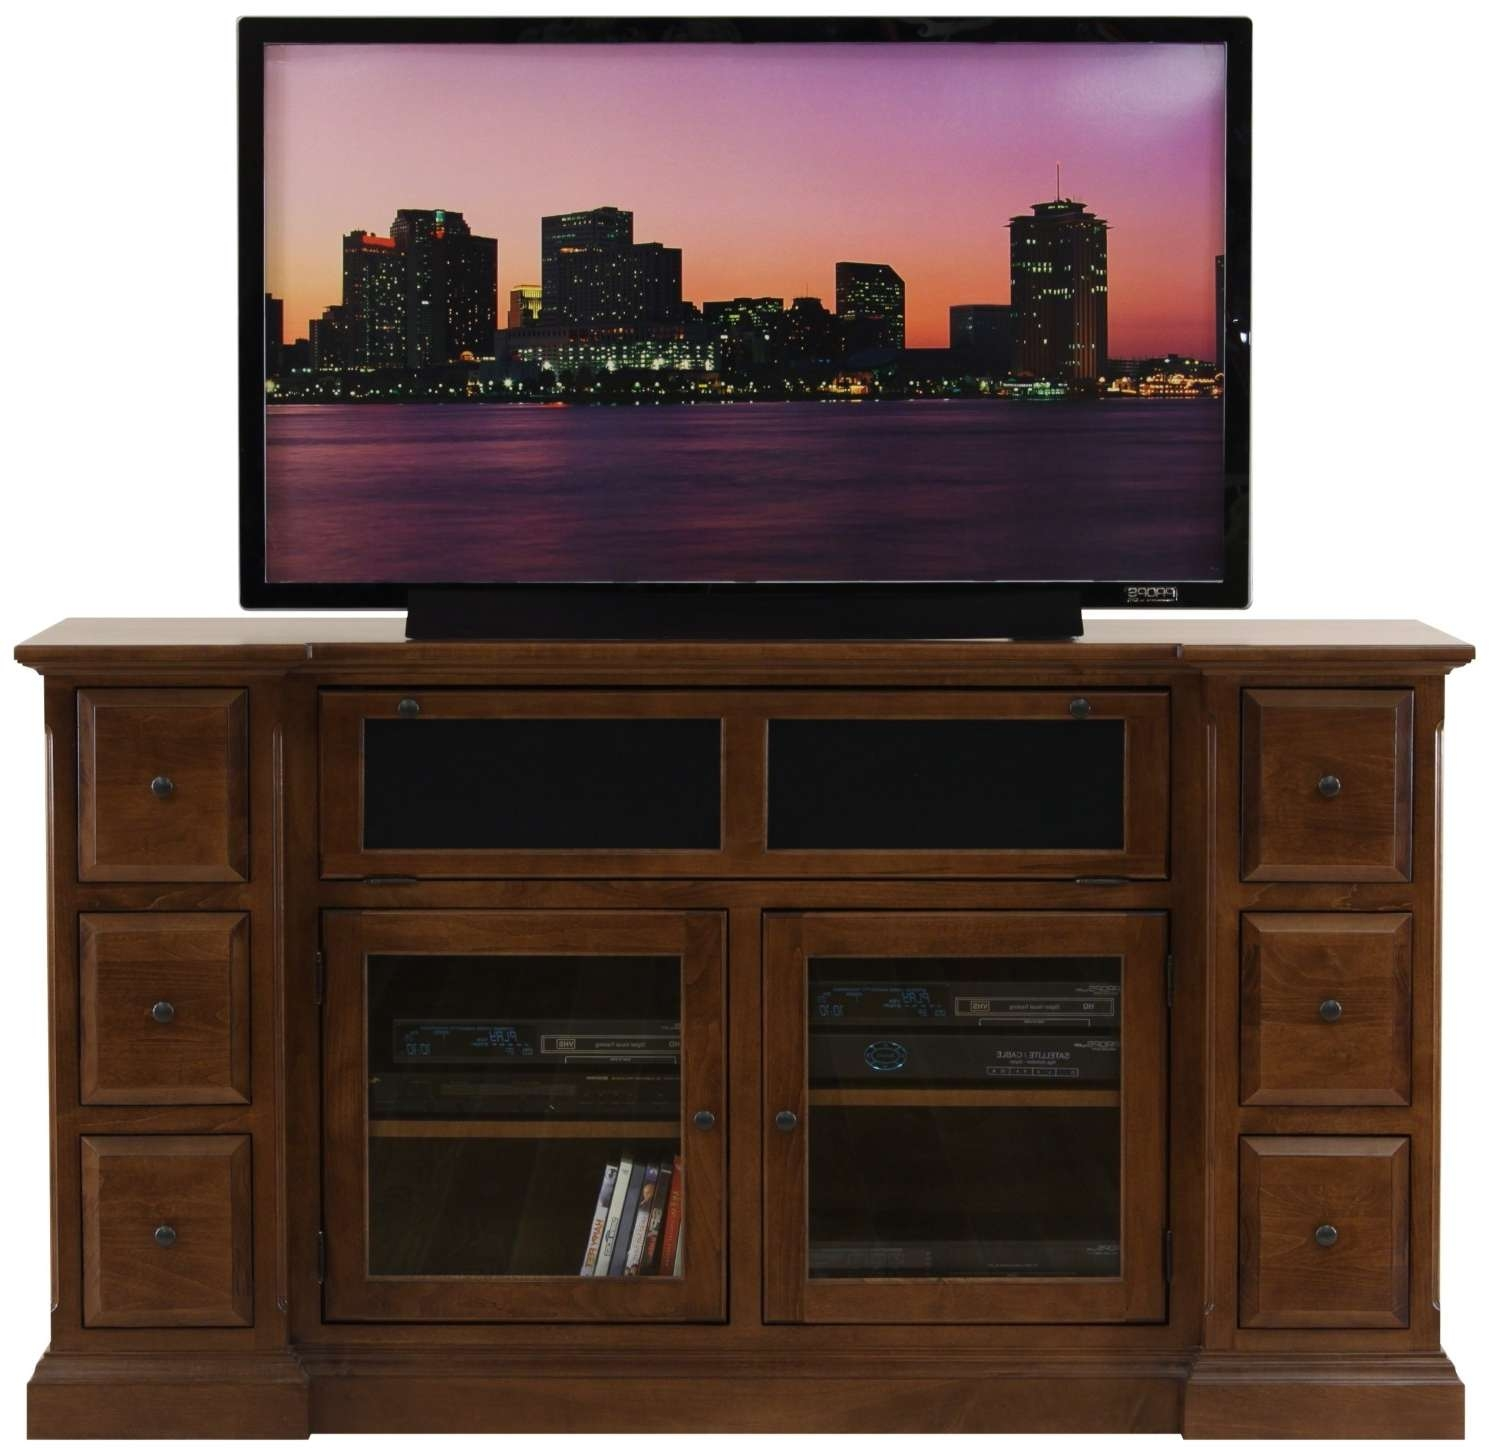 Brown Wooden Tv Stand With Storage With Glass Doors Combined With Inside Wooden Tv Cabinets With Glass Doors (View 2 of 20)